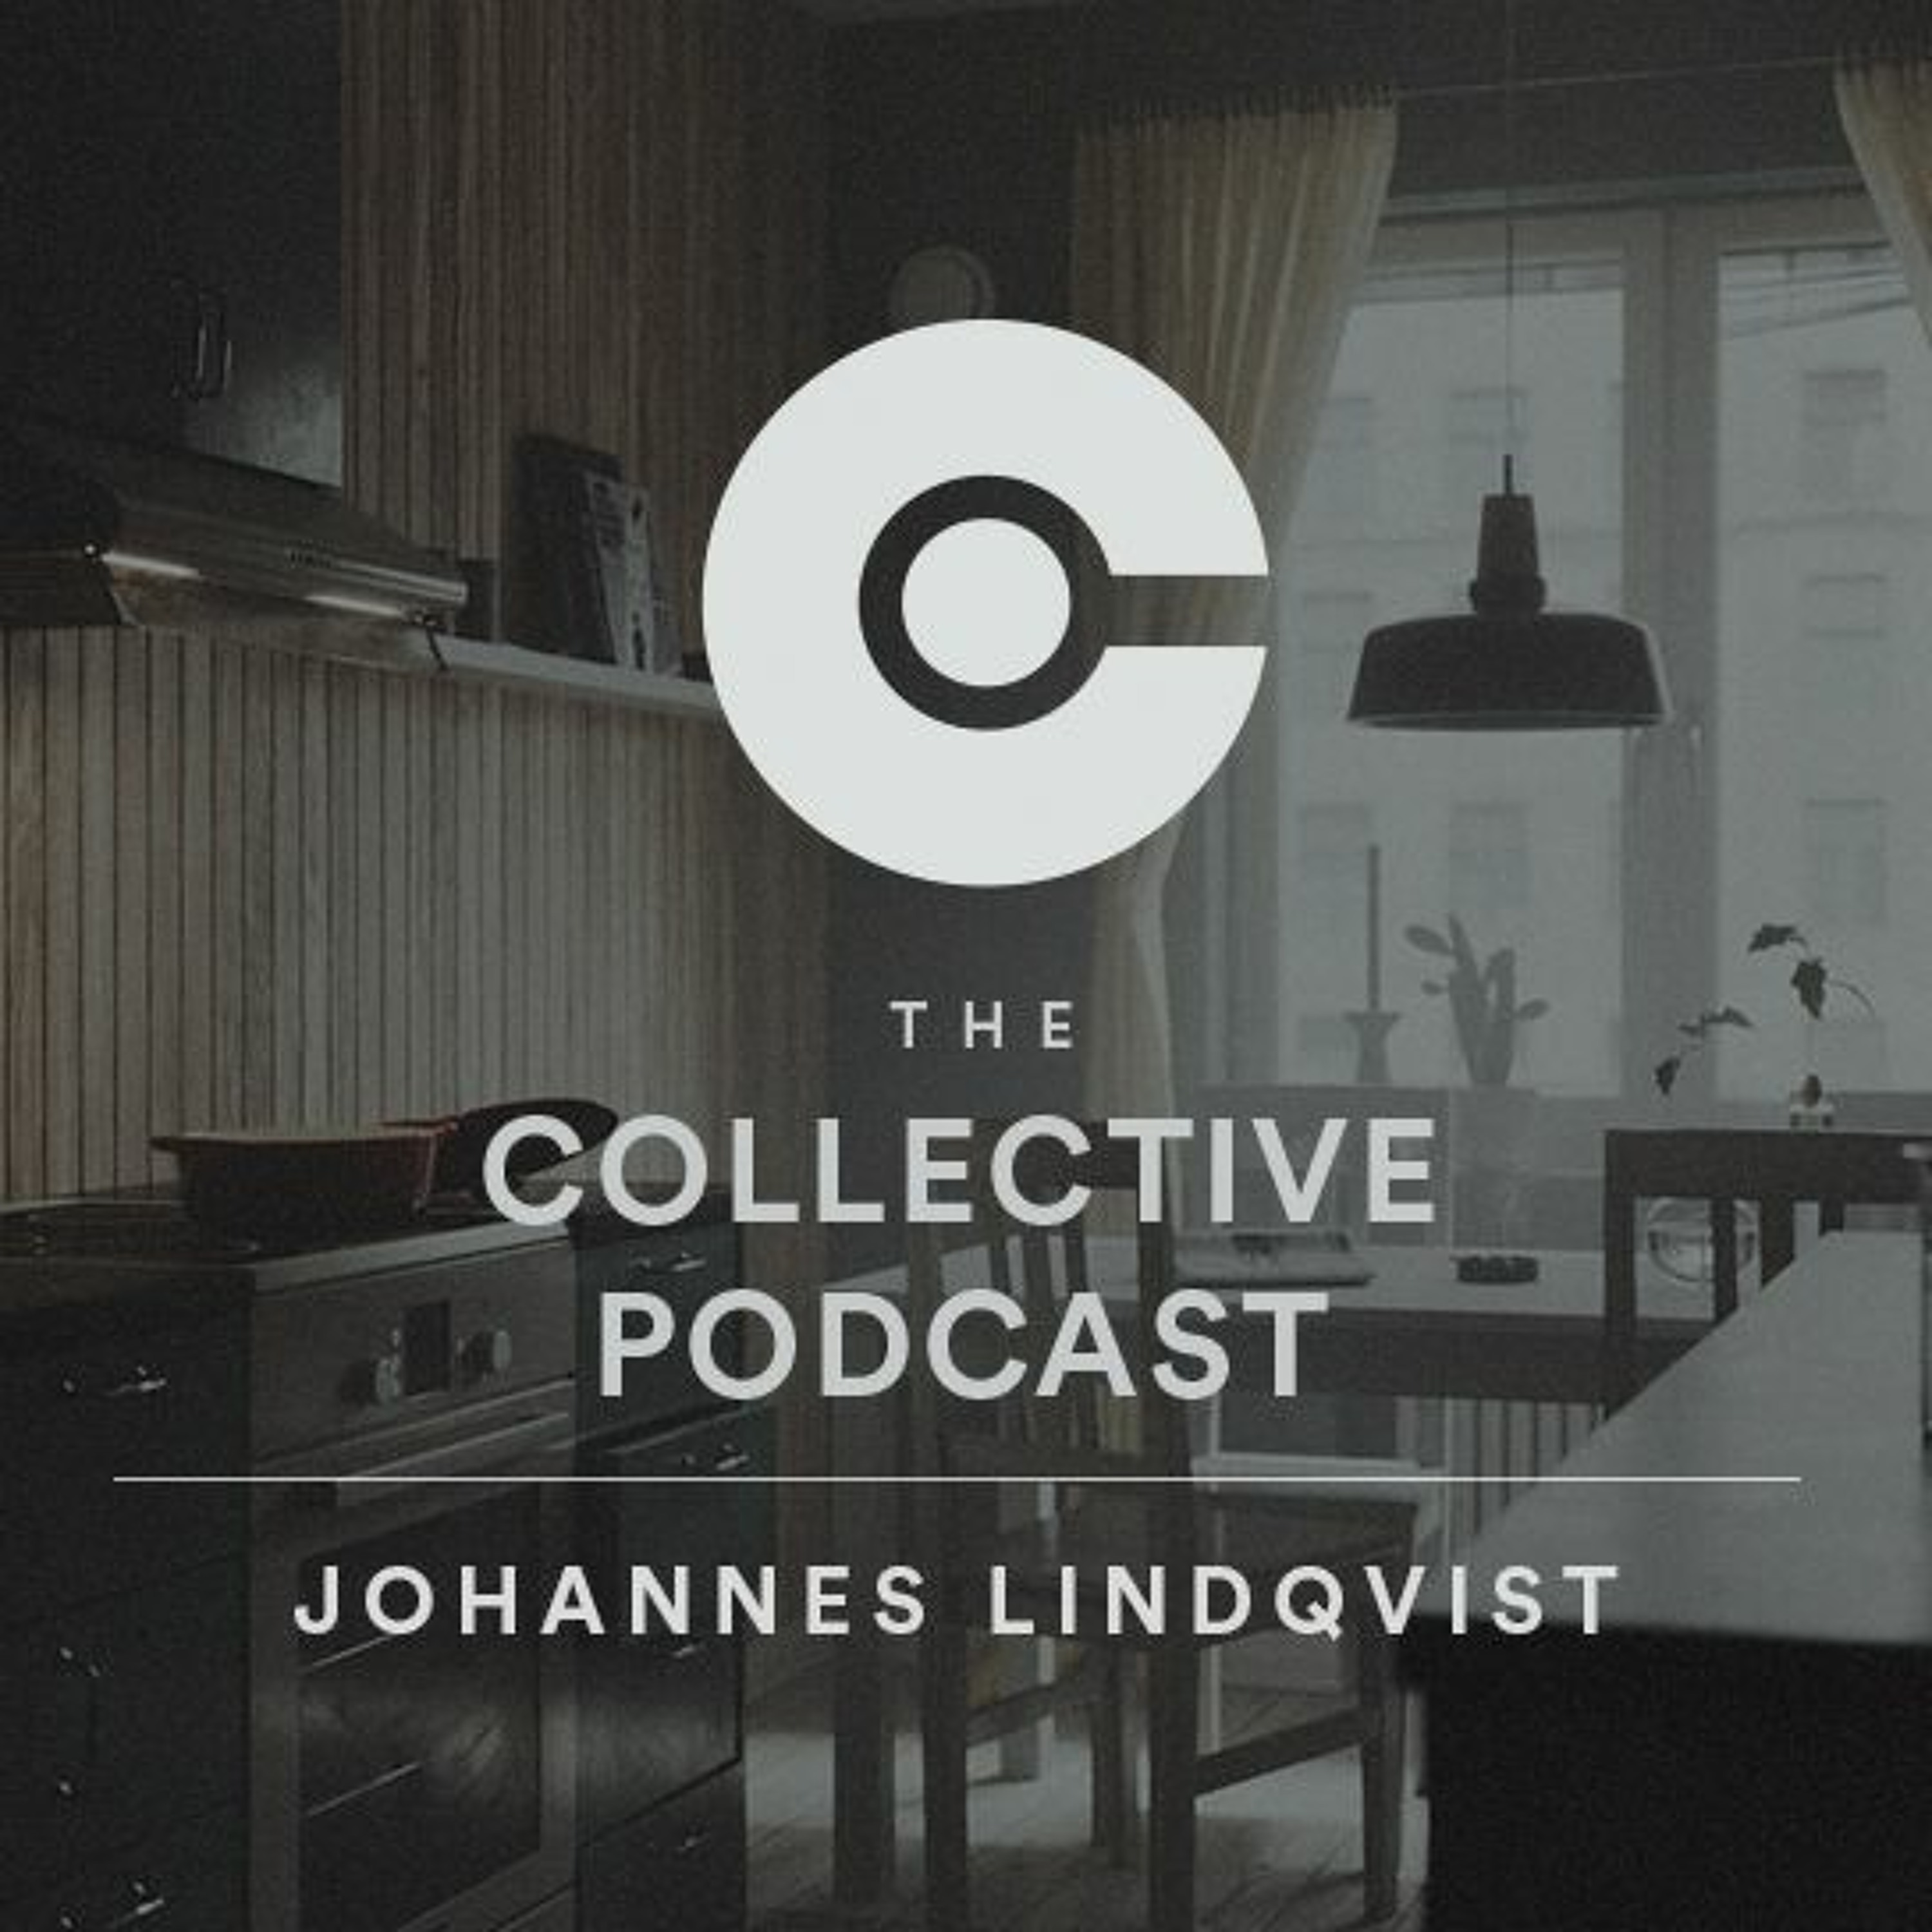 The Collective Podcast